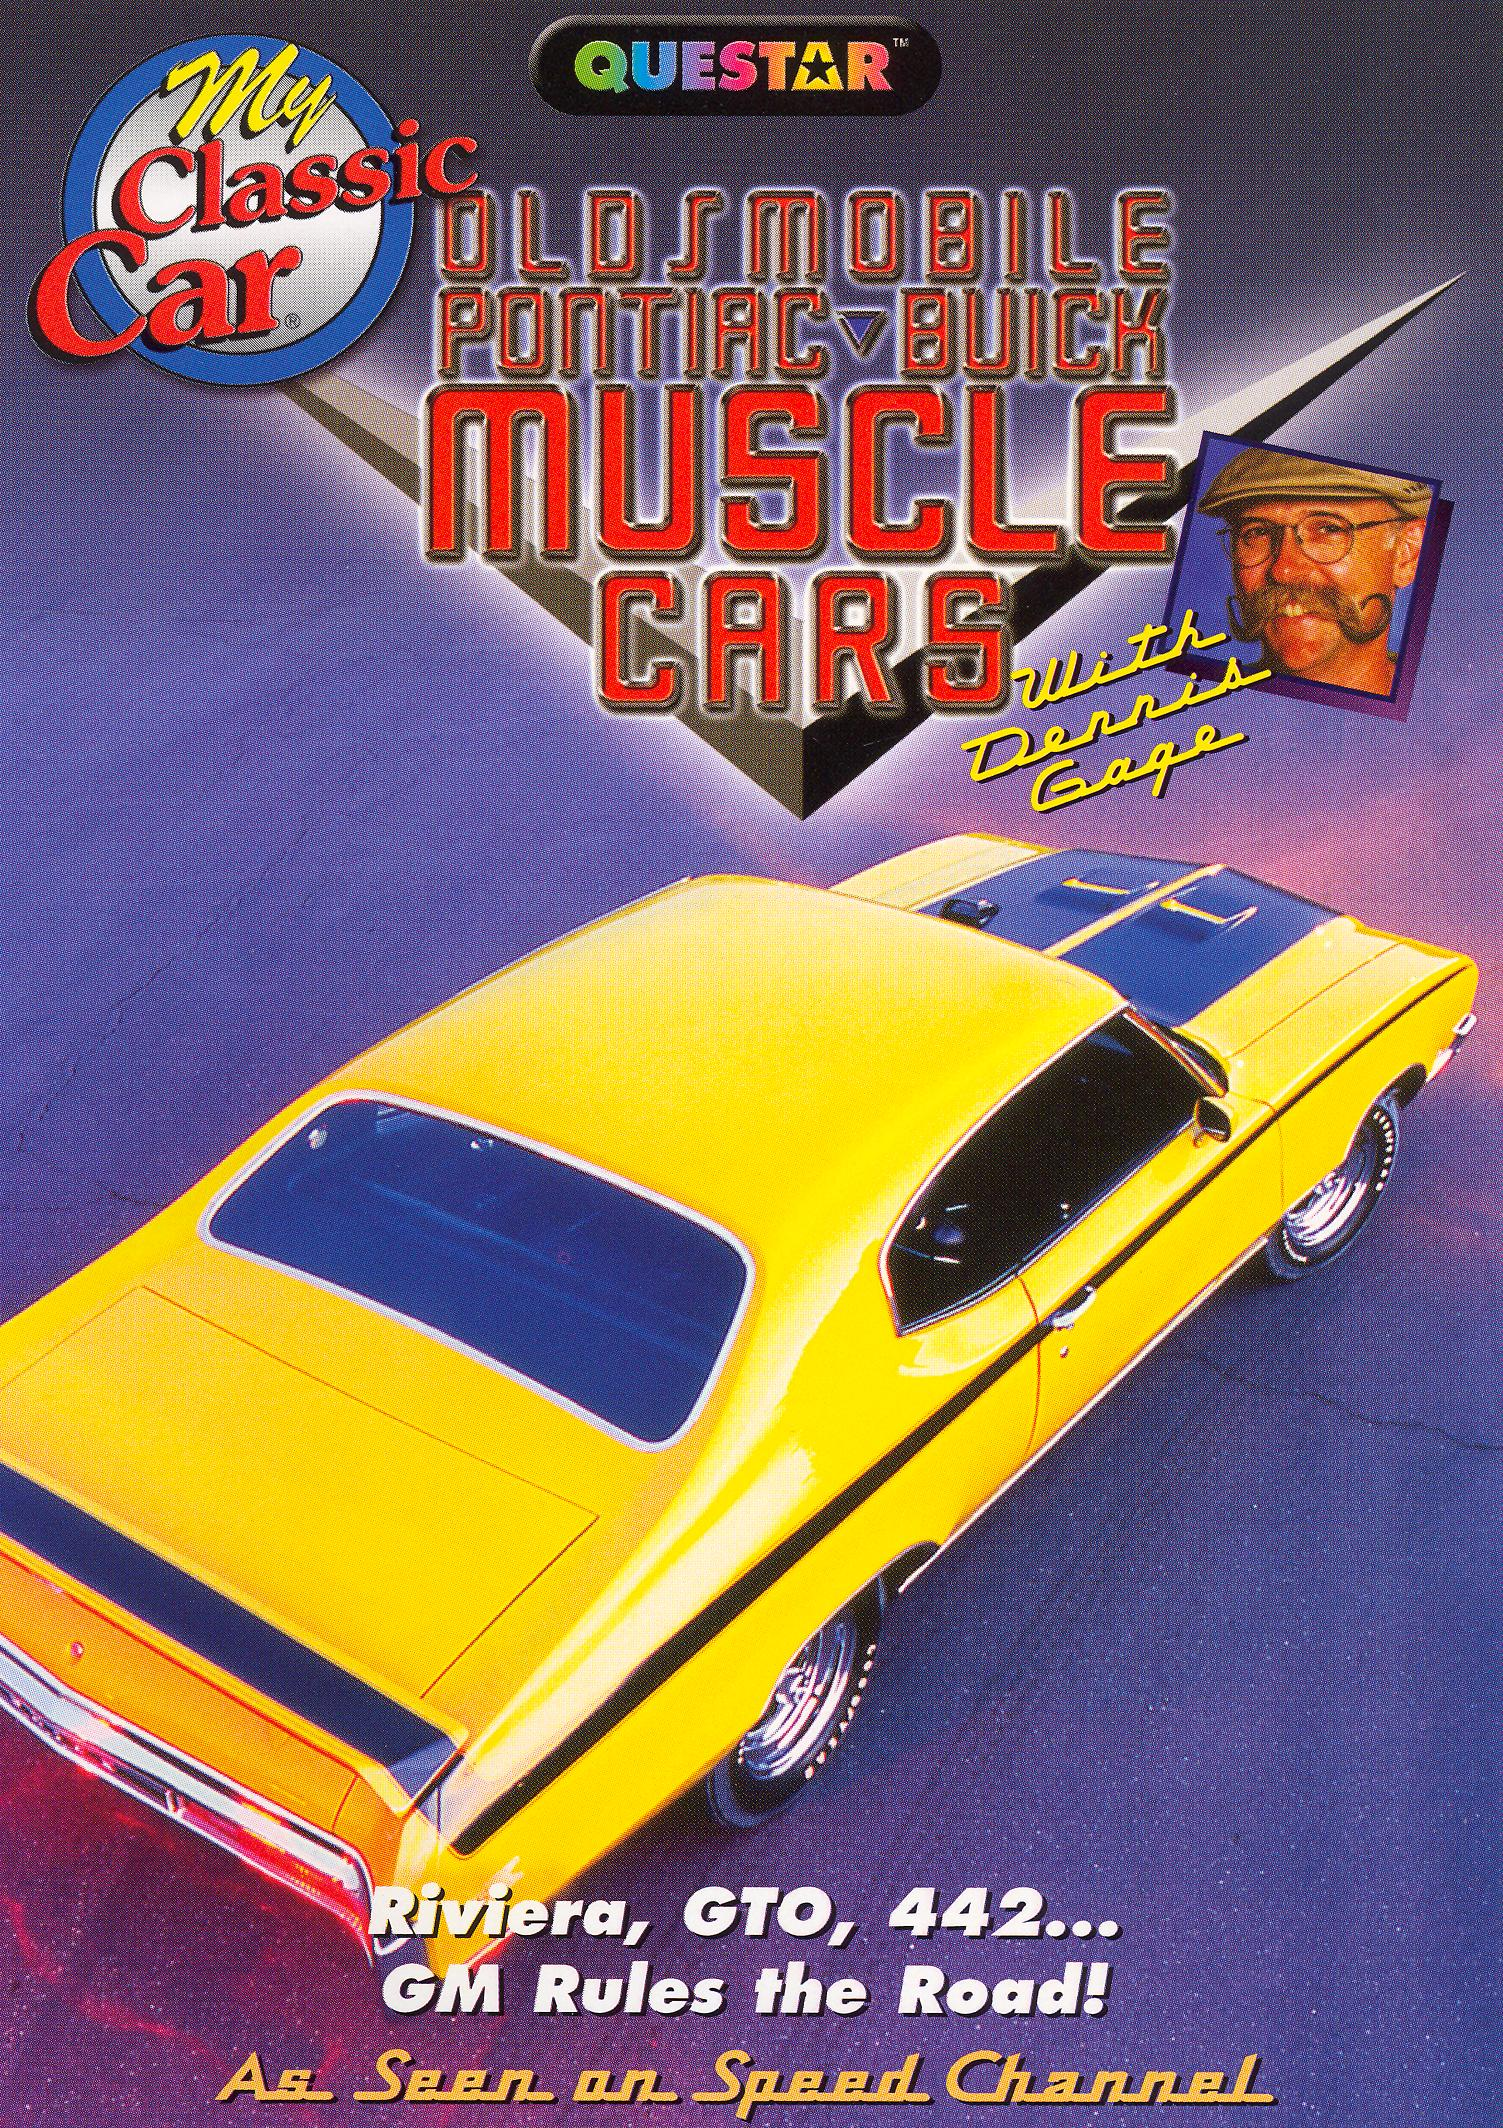 My Classic Car: Olds-Pontiac-Buick Muscle Cars